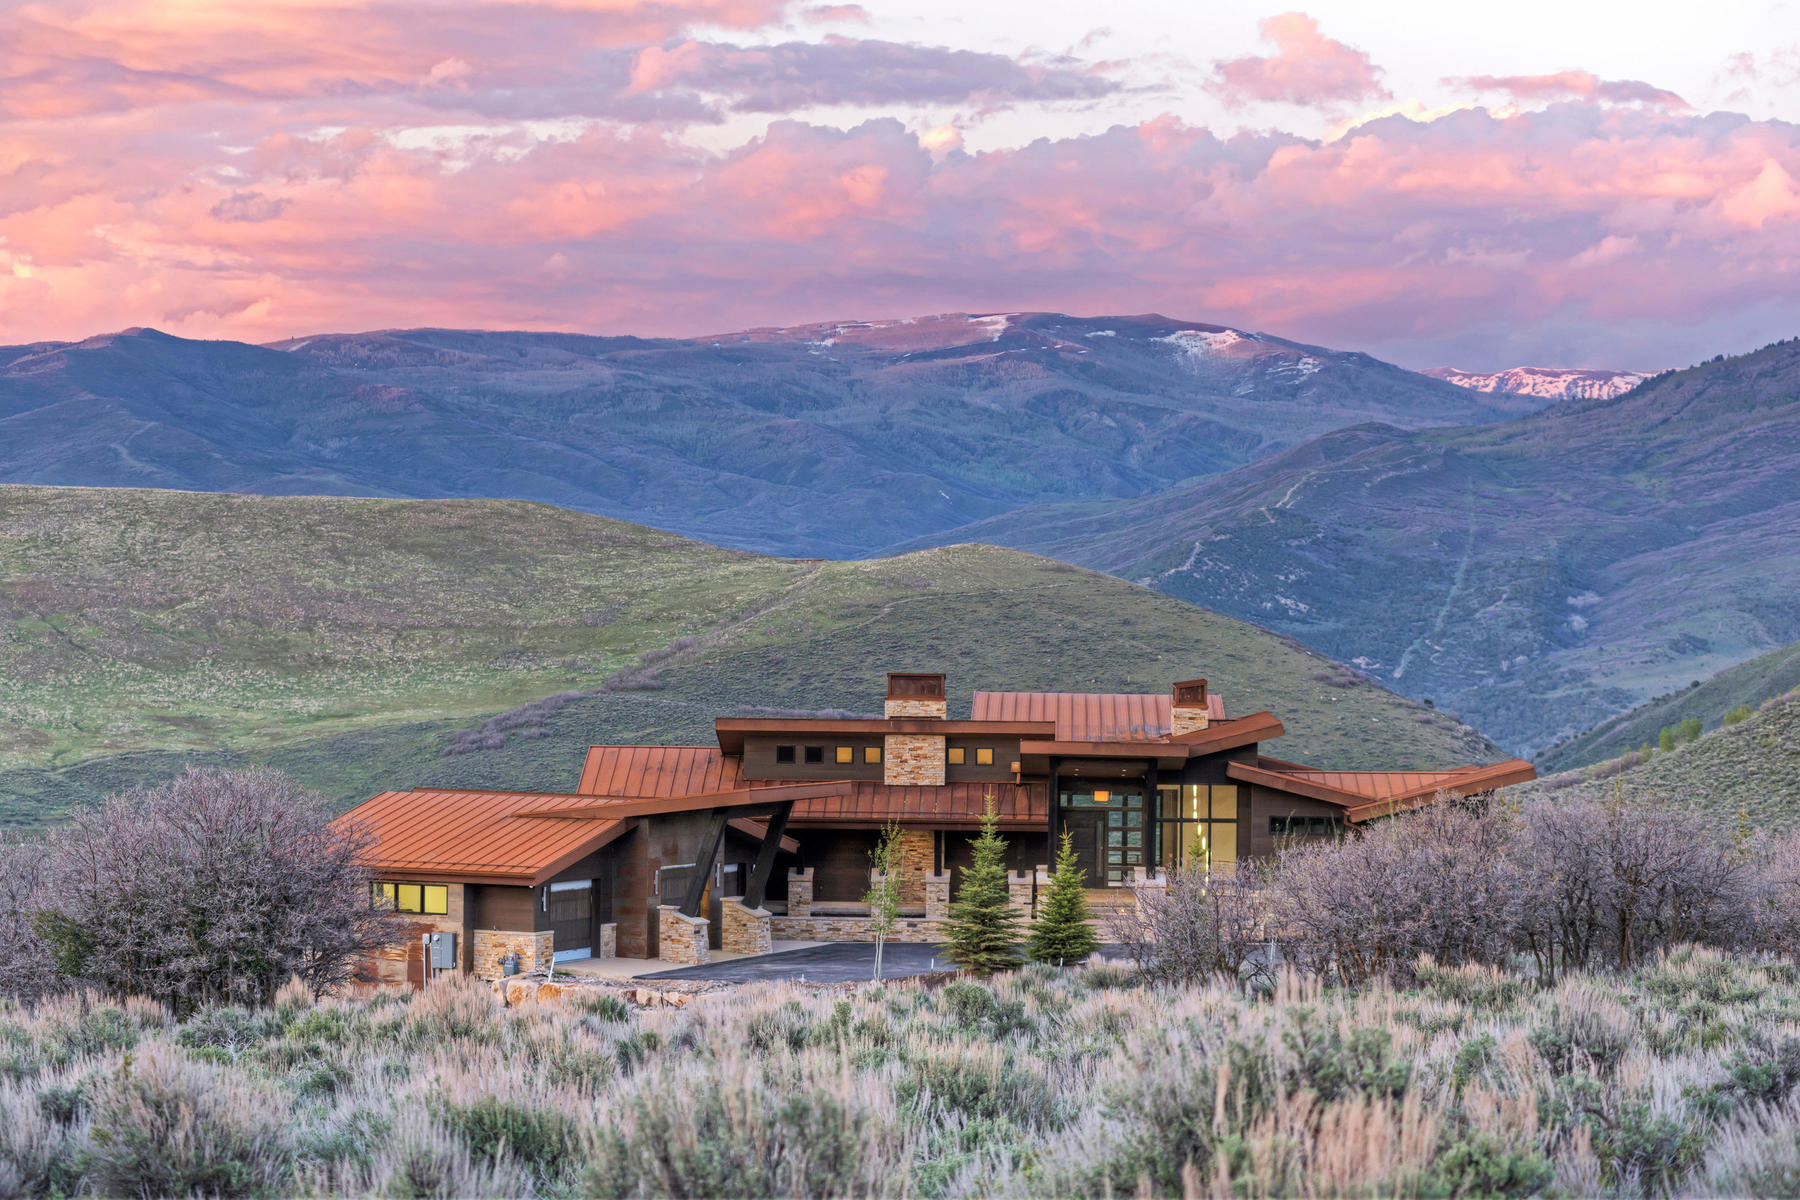 Tek Ailelik Ev için Satış at Spectacular New Construction Home with Panoramic Views protected by Open Space! 3931 Aspen Camp Loop Park City, Utah, 84098 Amerika Birleşik Devletleri